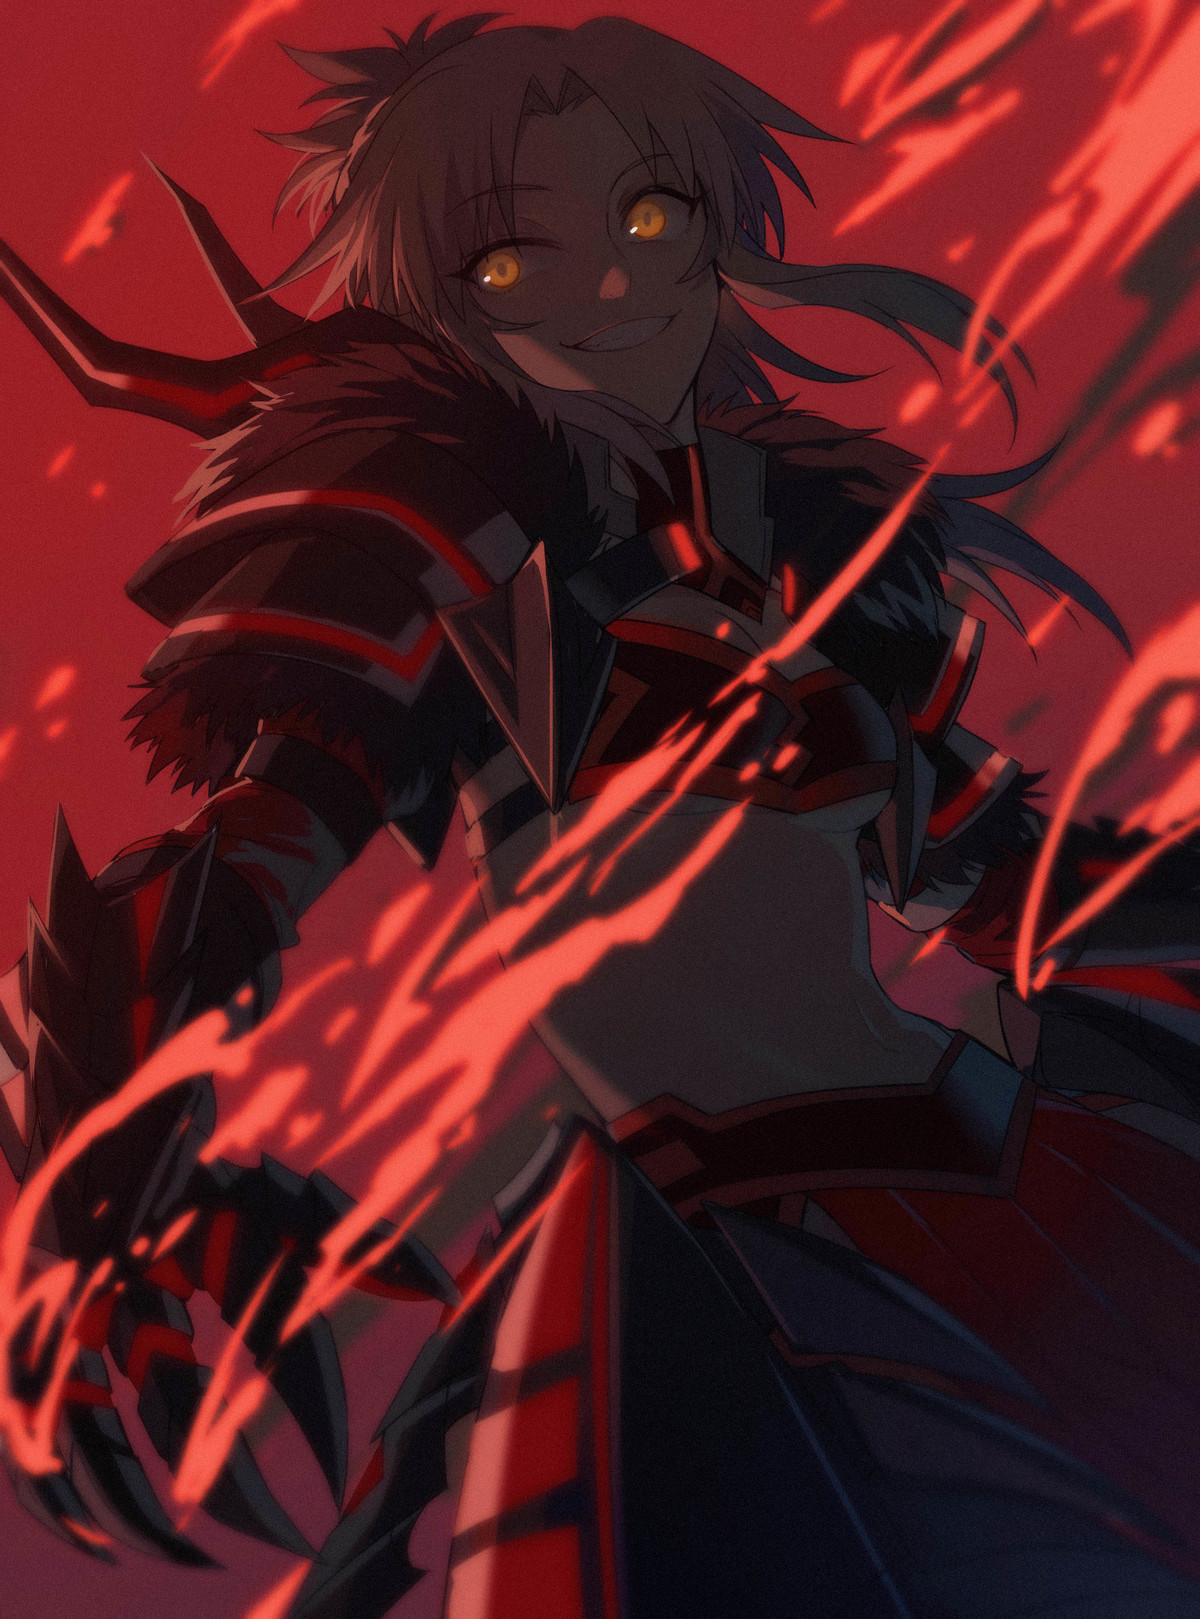 Give me berserker mordred alter already. join list: TheAbsOfTreachery (109 subs)Mention History.. I know that feeling